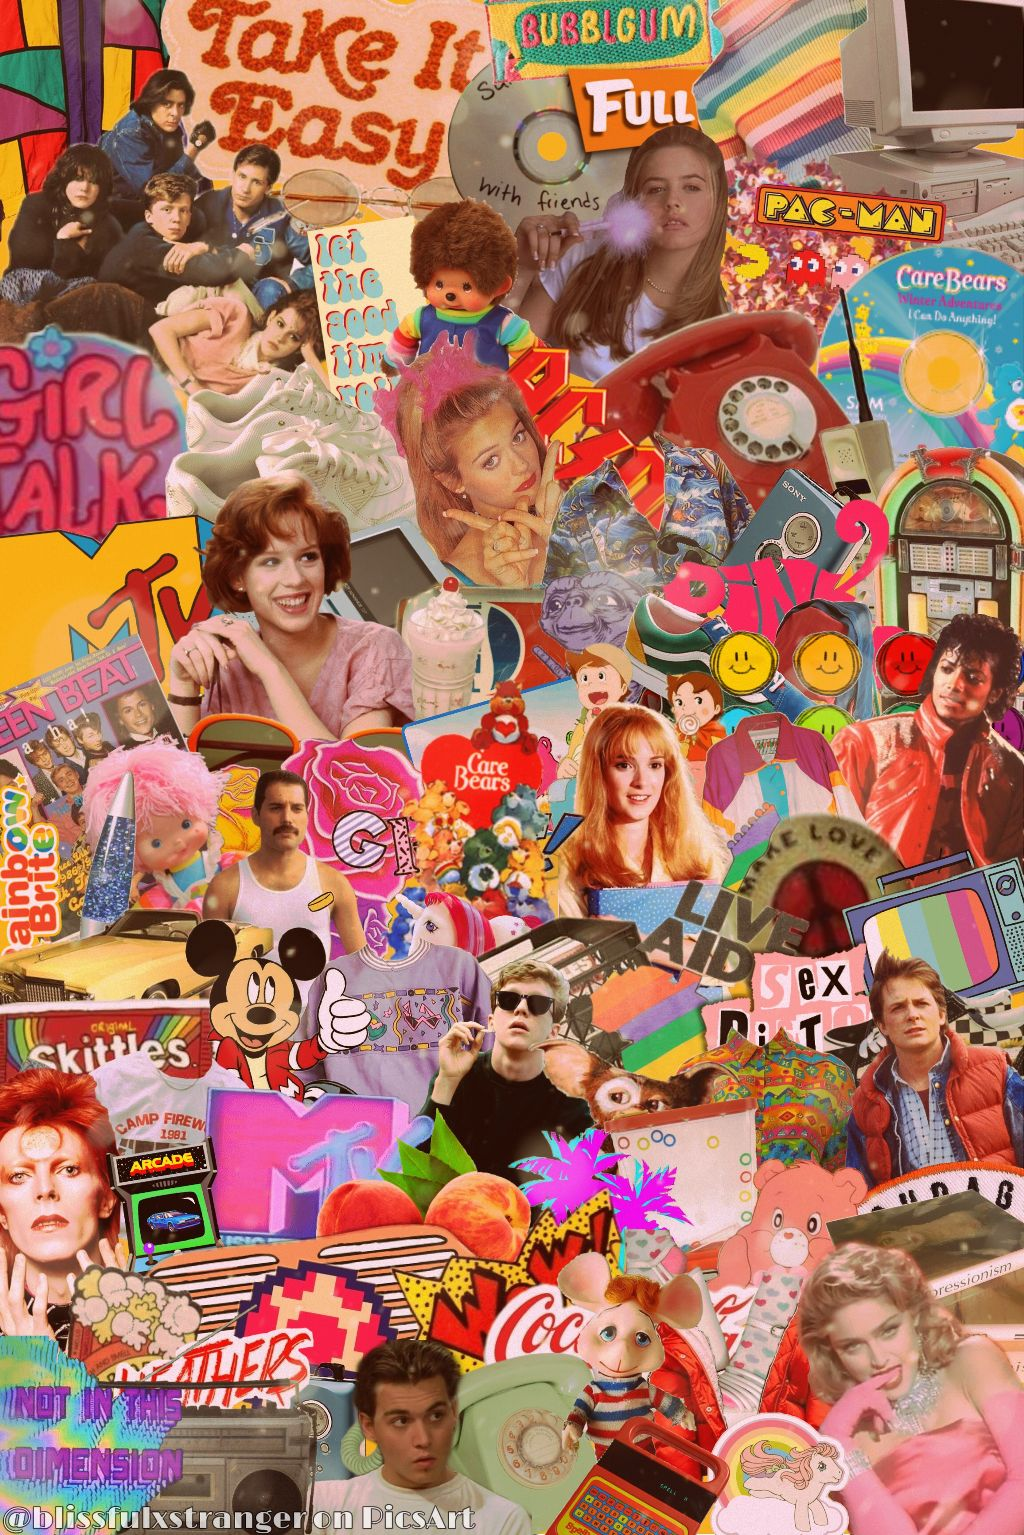 Me? Making ANOTHER super-busy 80's aesthetic? Never......